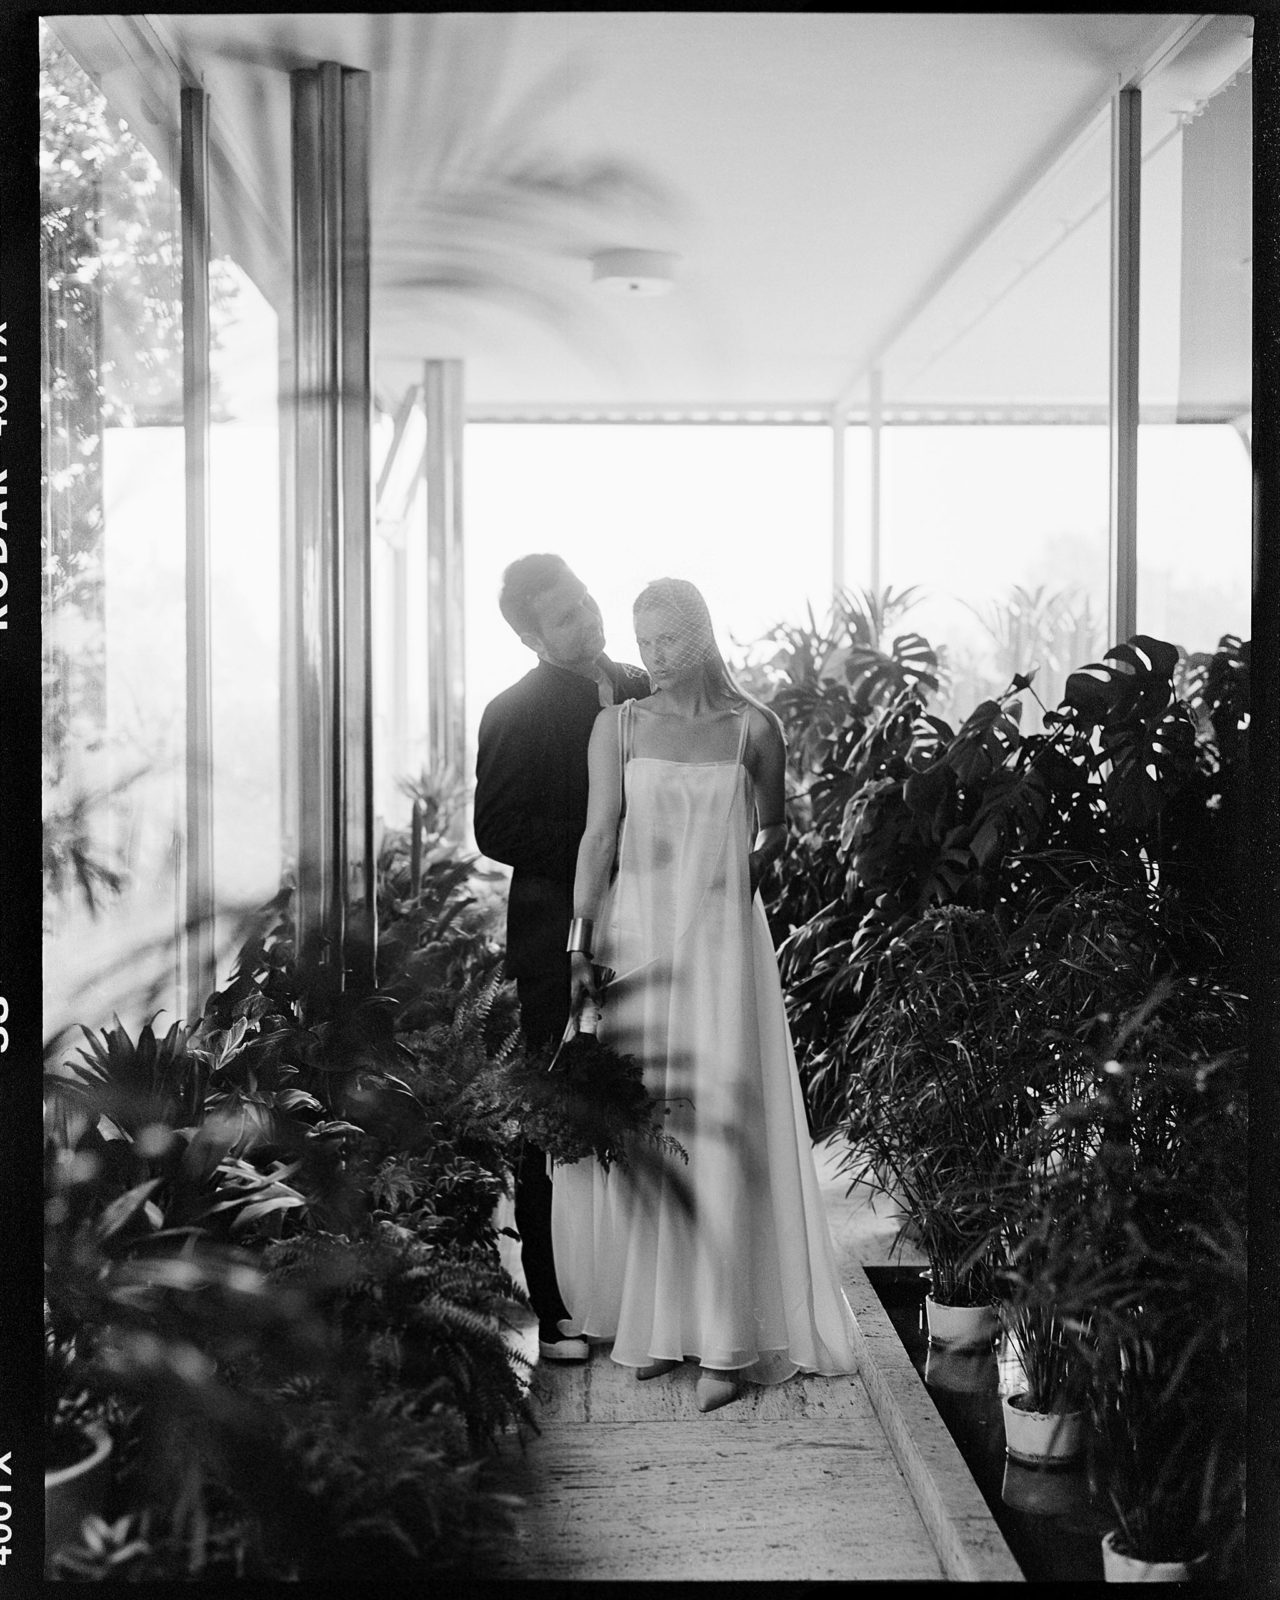 Vila Tugendhat Wedding — Dominika & Ivo